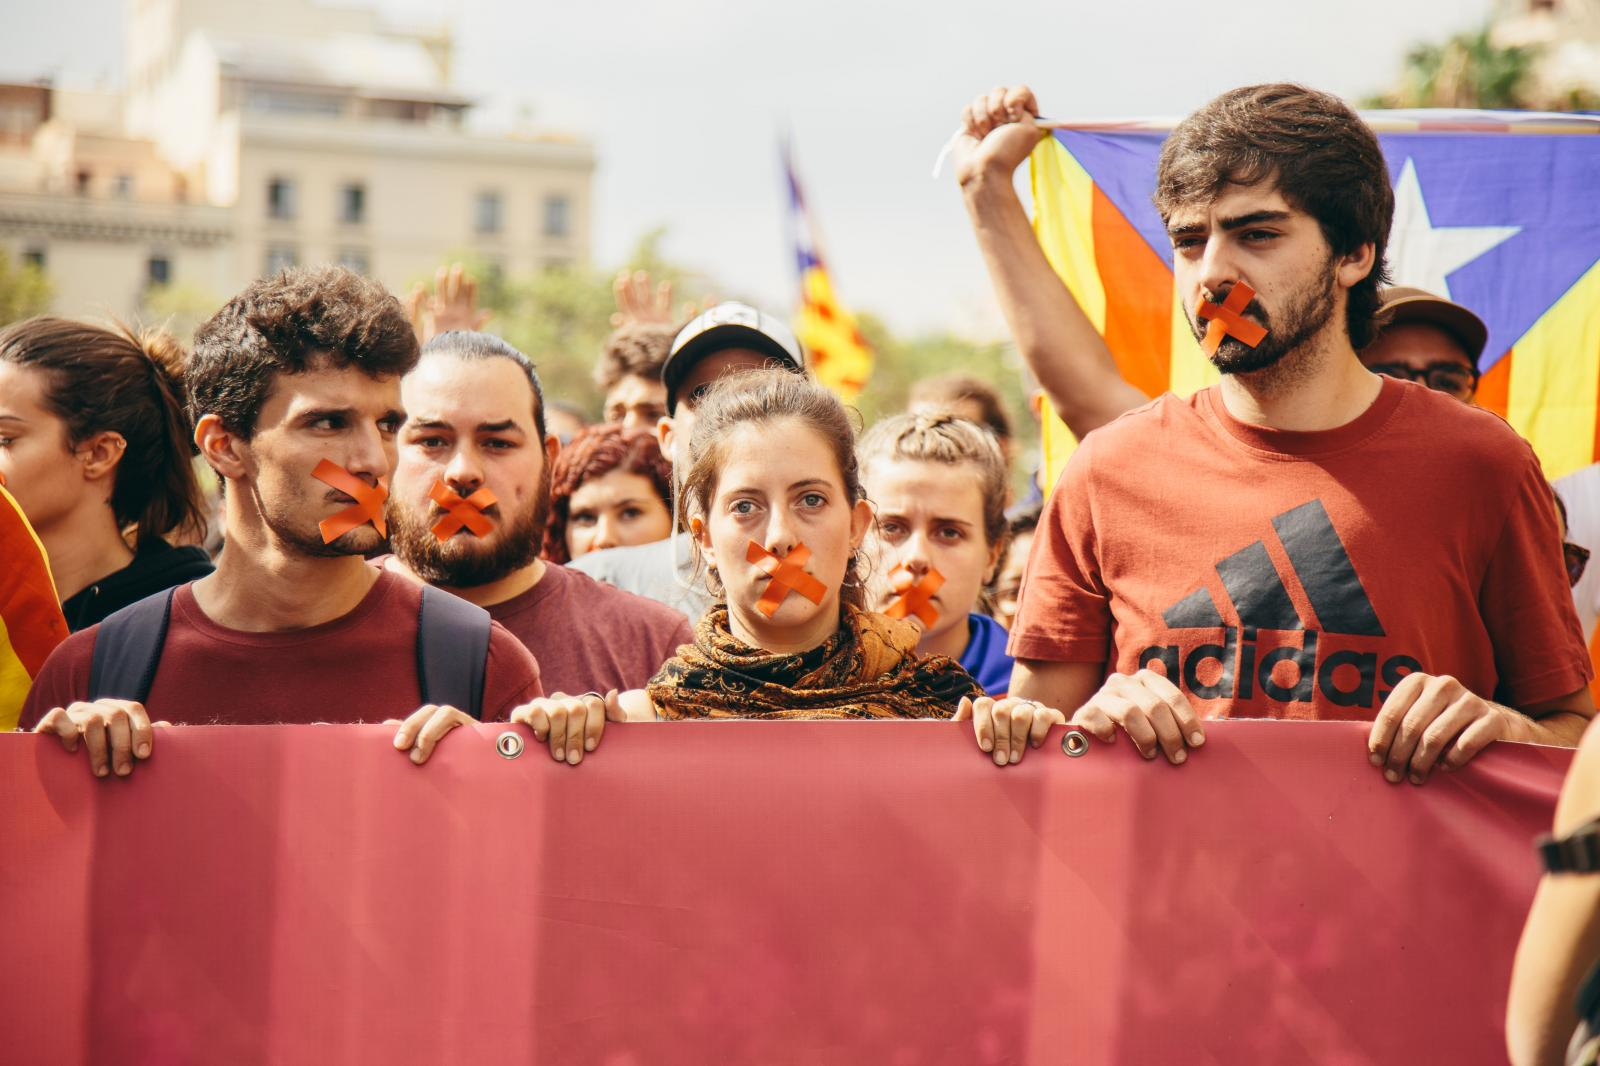 Students hold a march in central Barcelona with taped mouthes, feeling unheard by the reactions of the Spanish central government and urging a declaration of independence. October 2nd, 2017